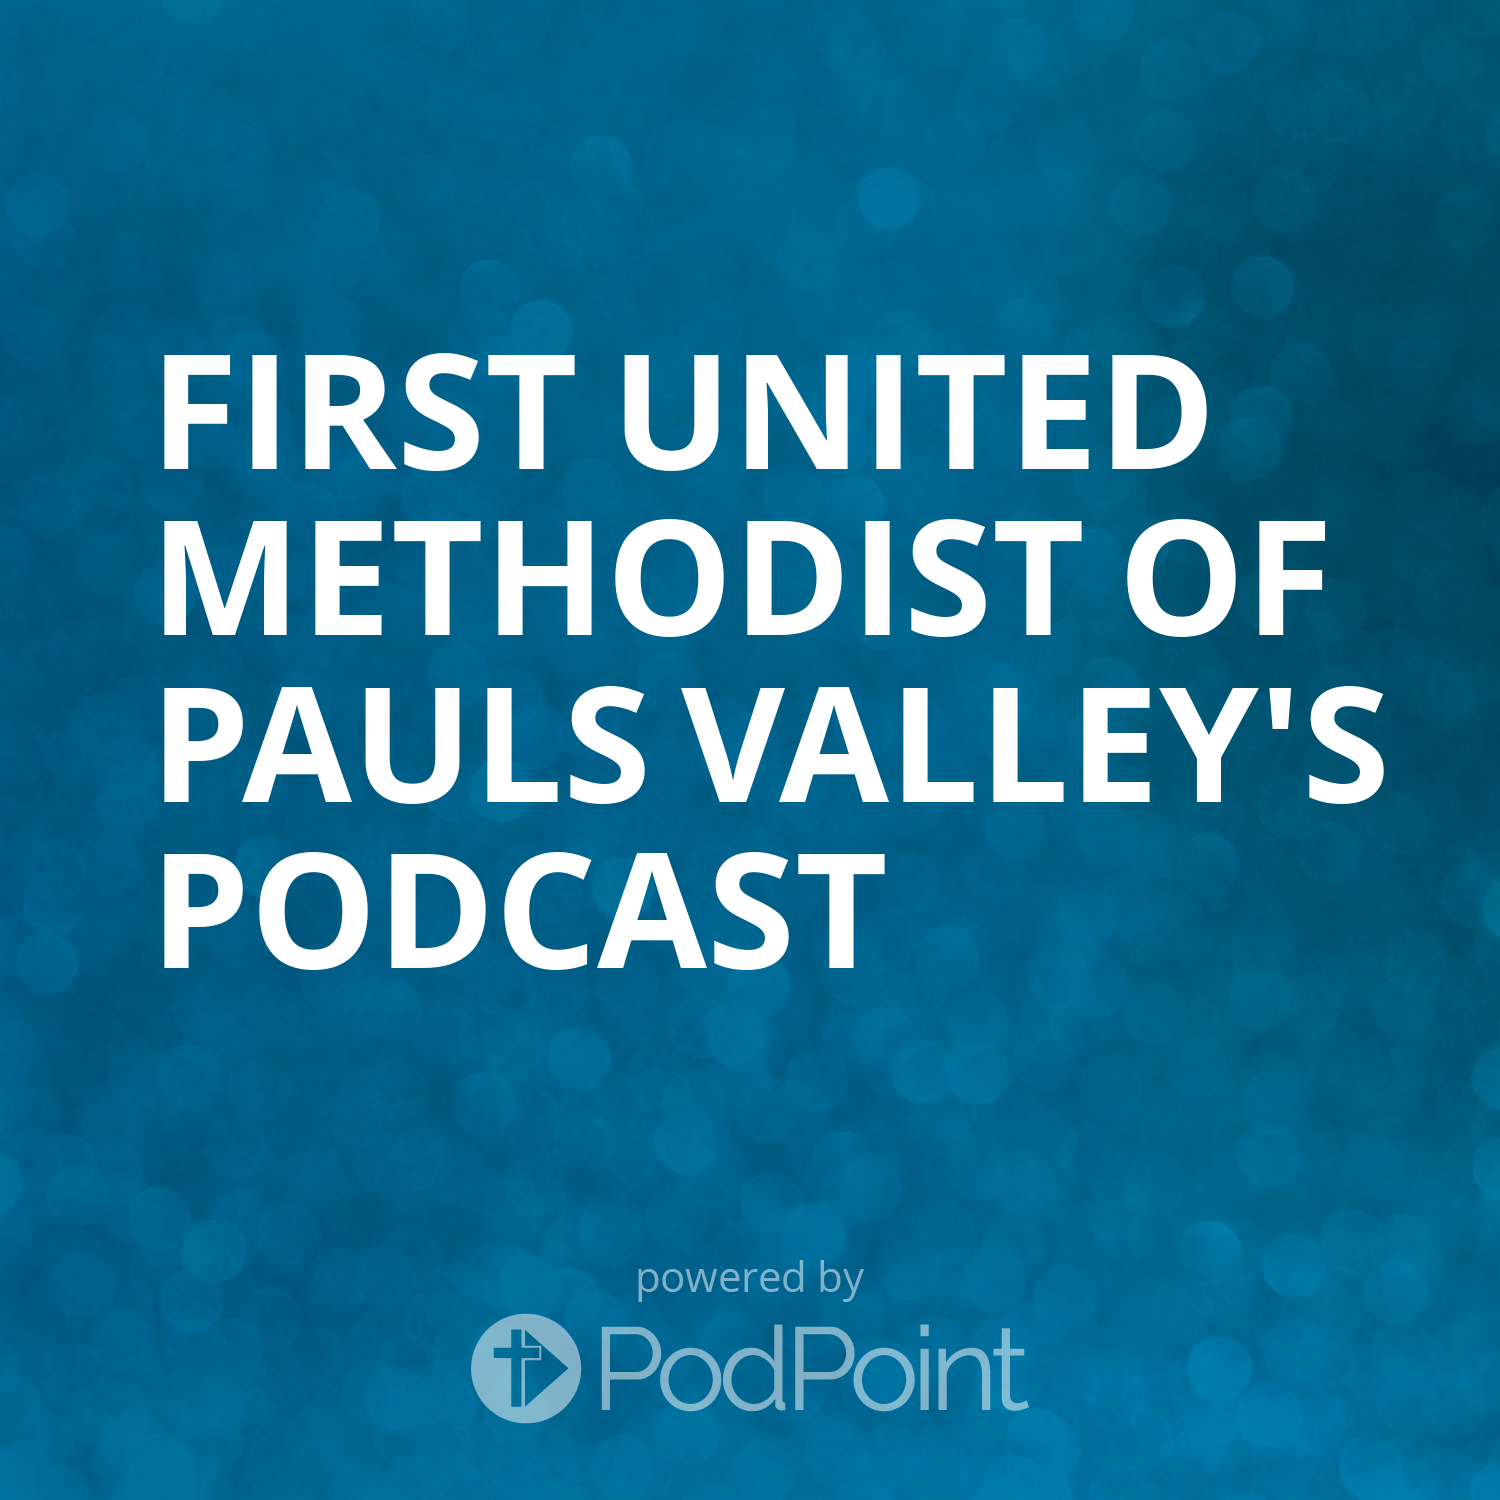 First United Methodist of Pauls Valley's Podcast